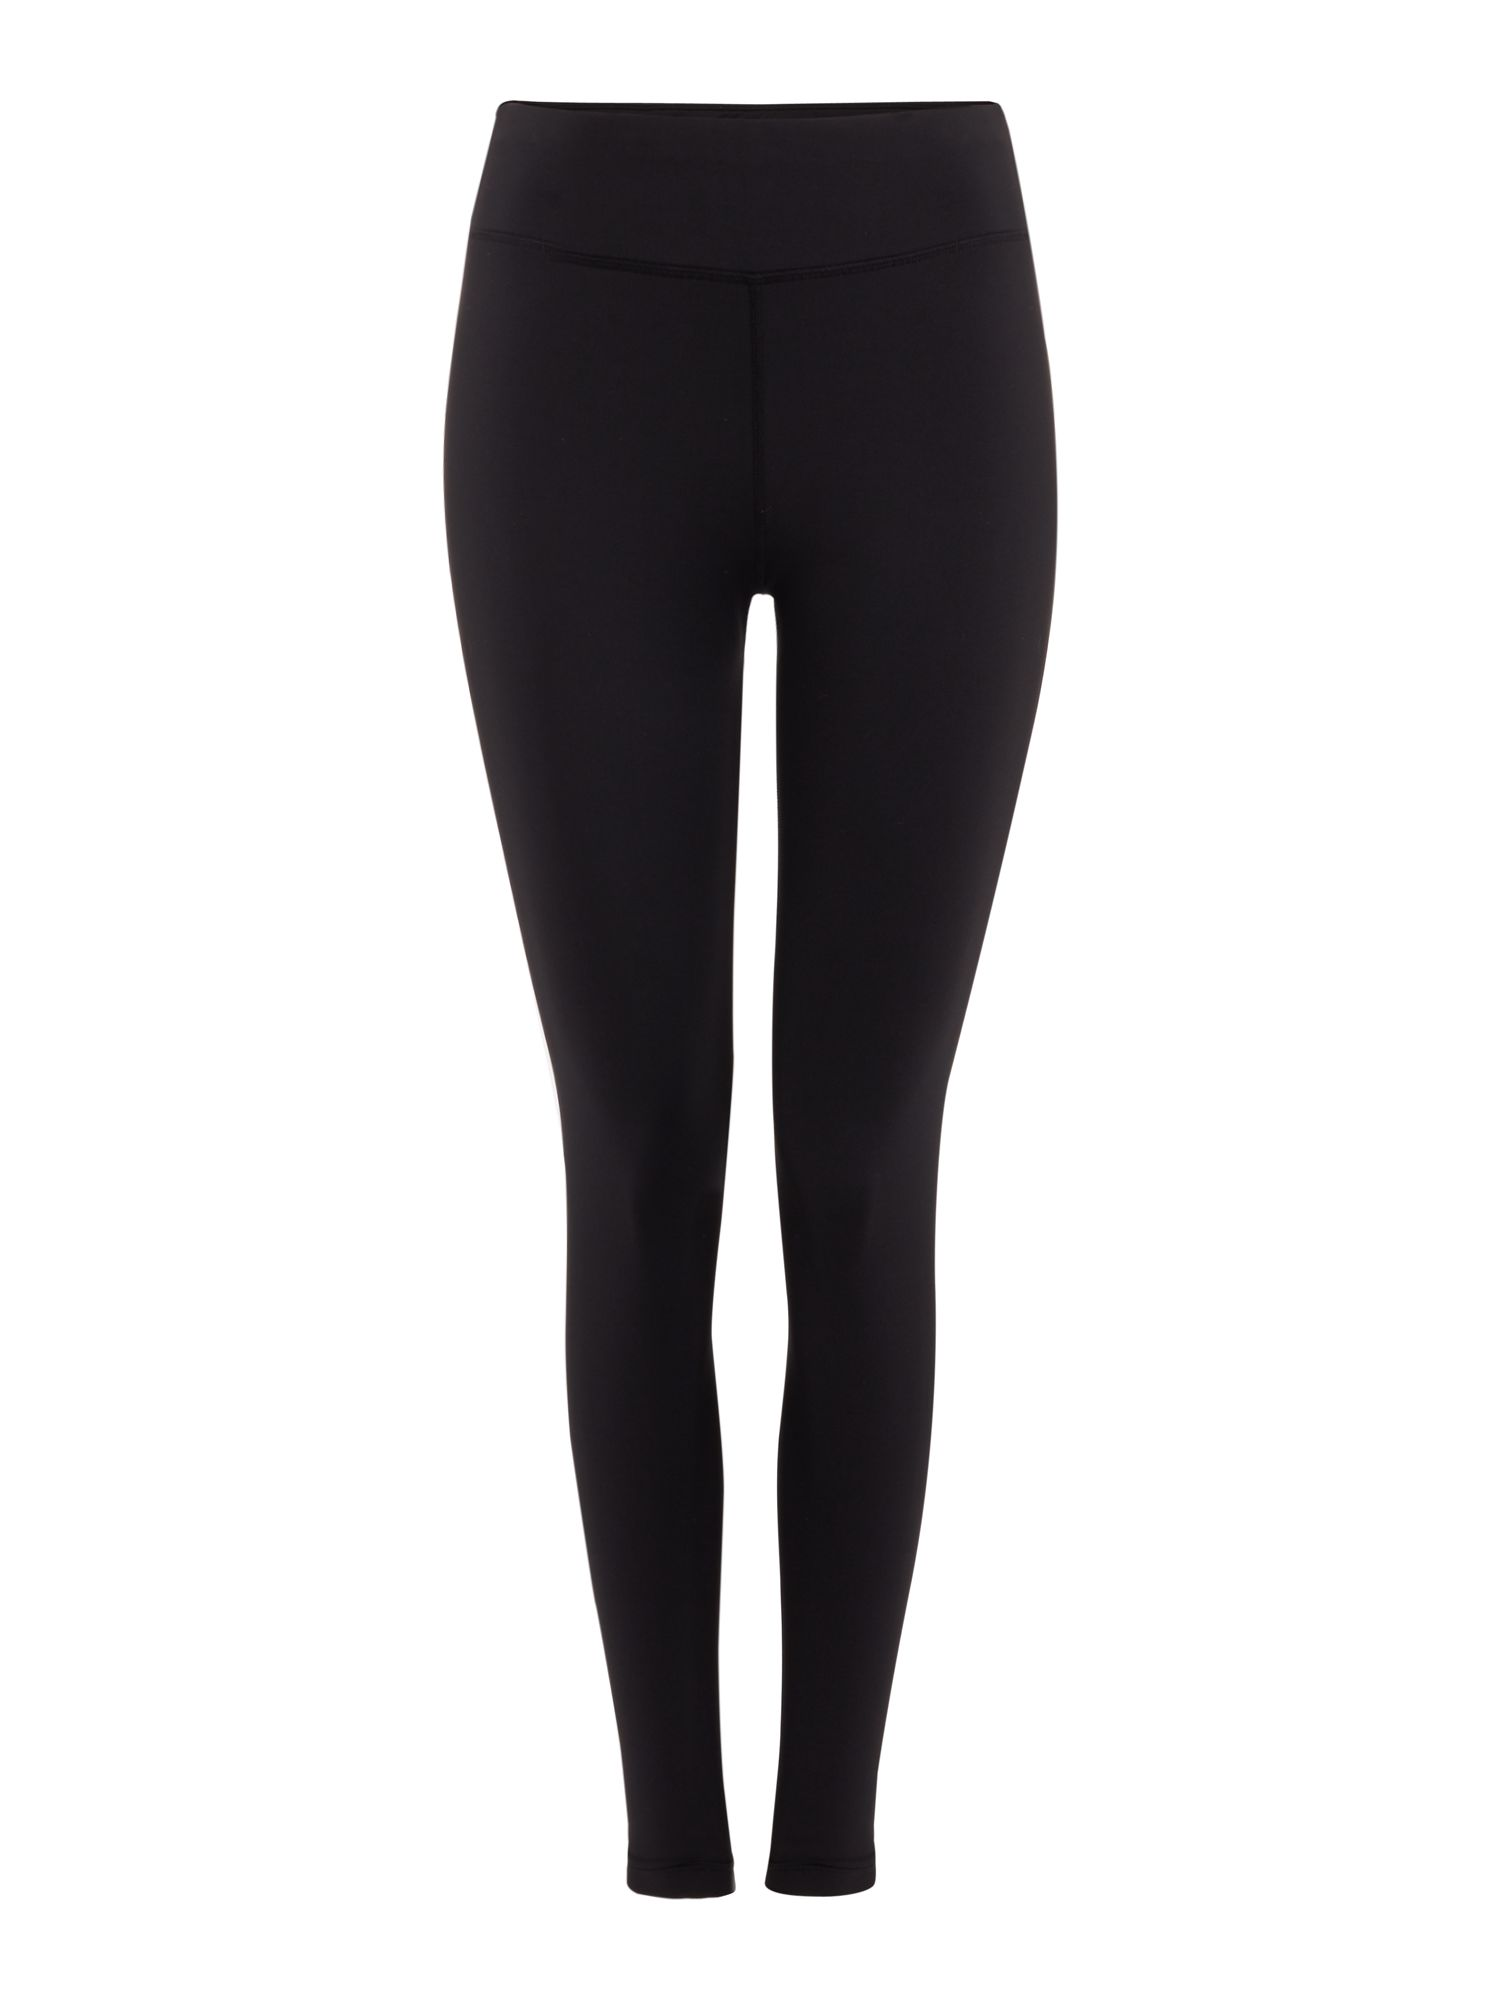 Biba Biba body gym leggings, Black